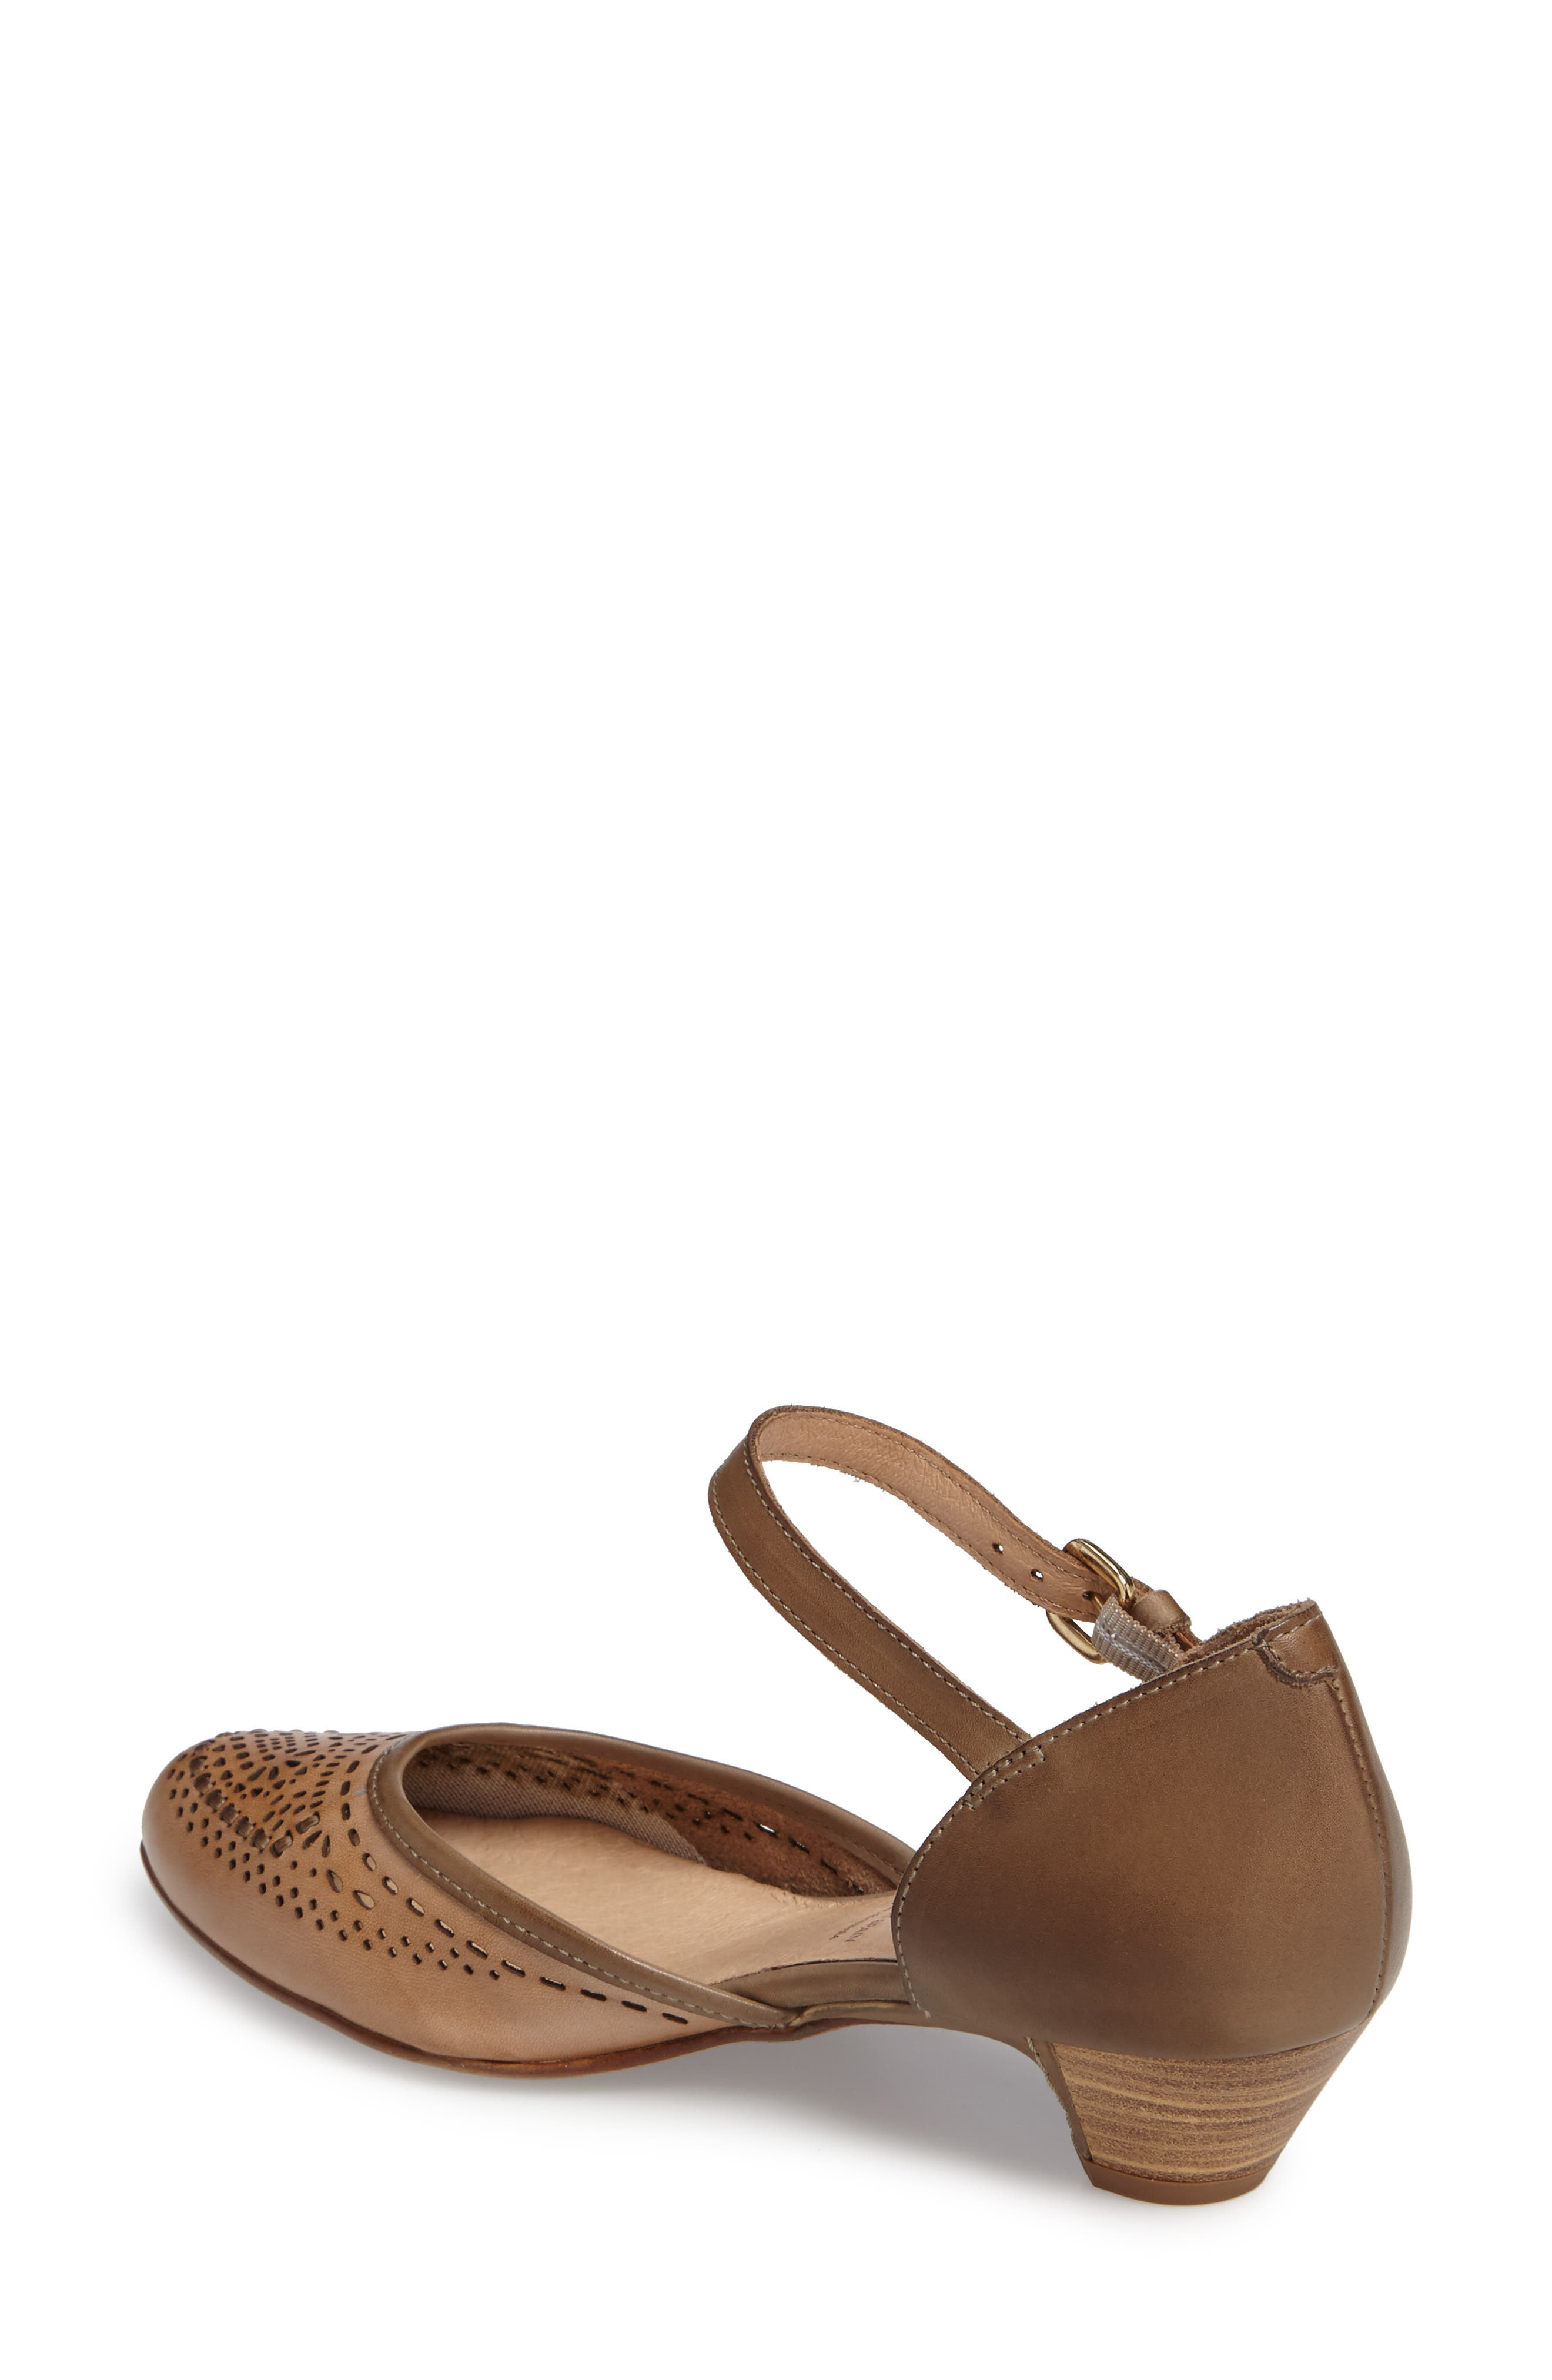 'Elba' Perforated Leather Ankle Strap Sandal,                             Alternate thumbnail 6, color,